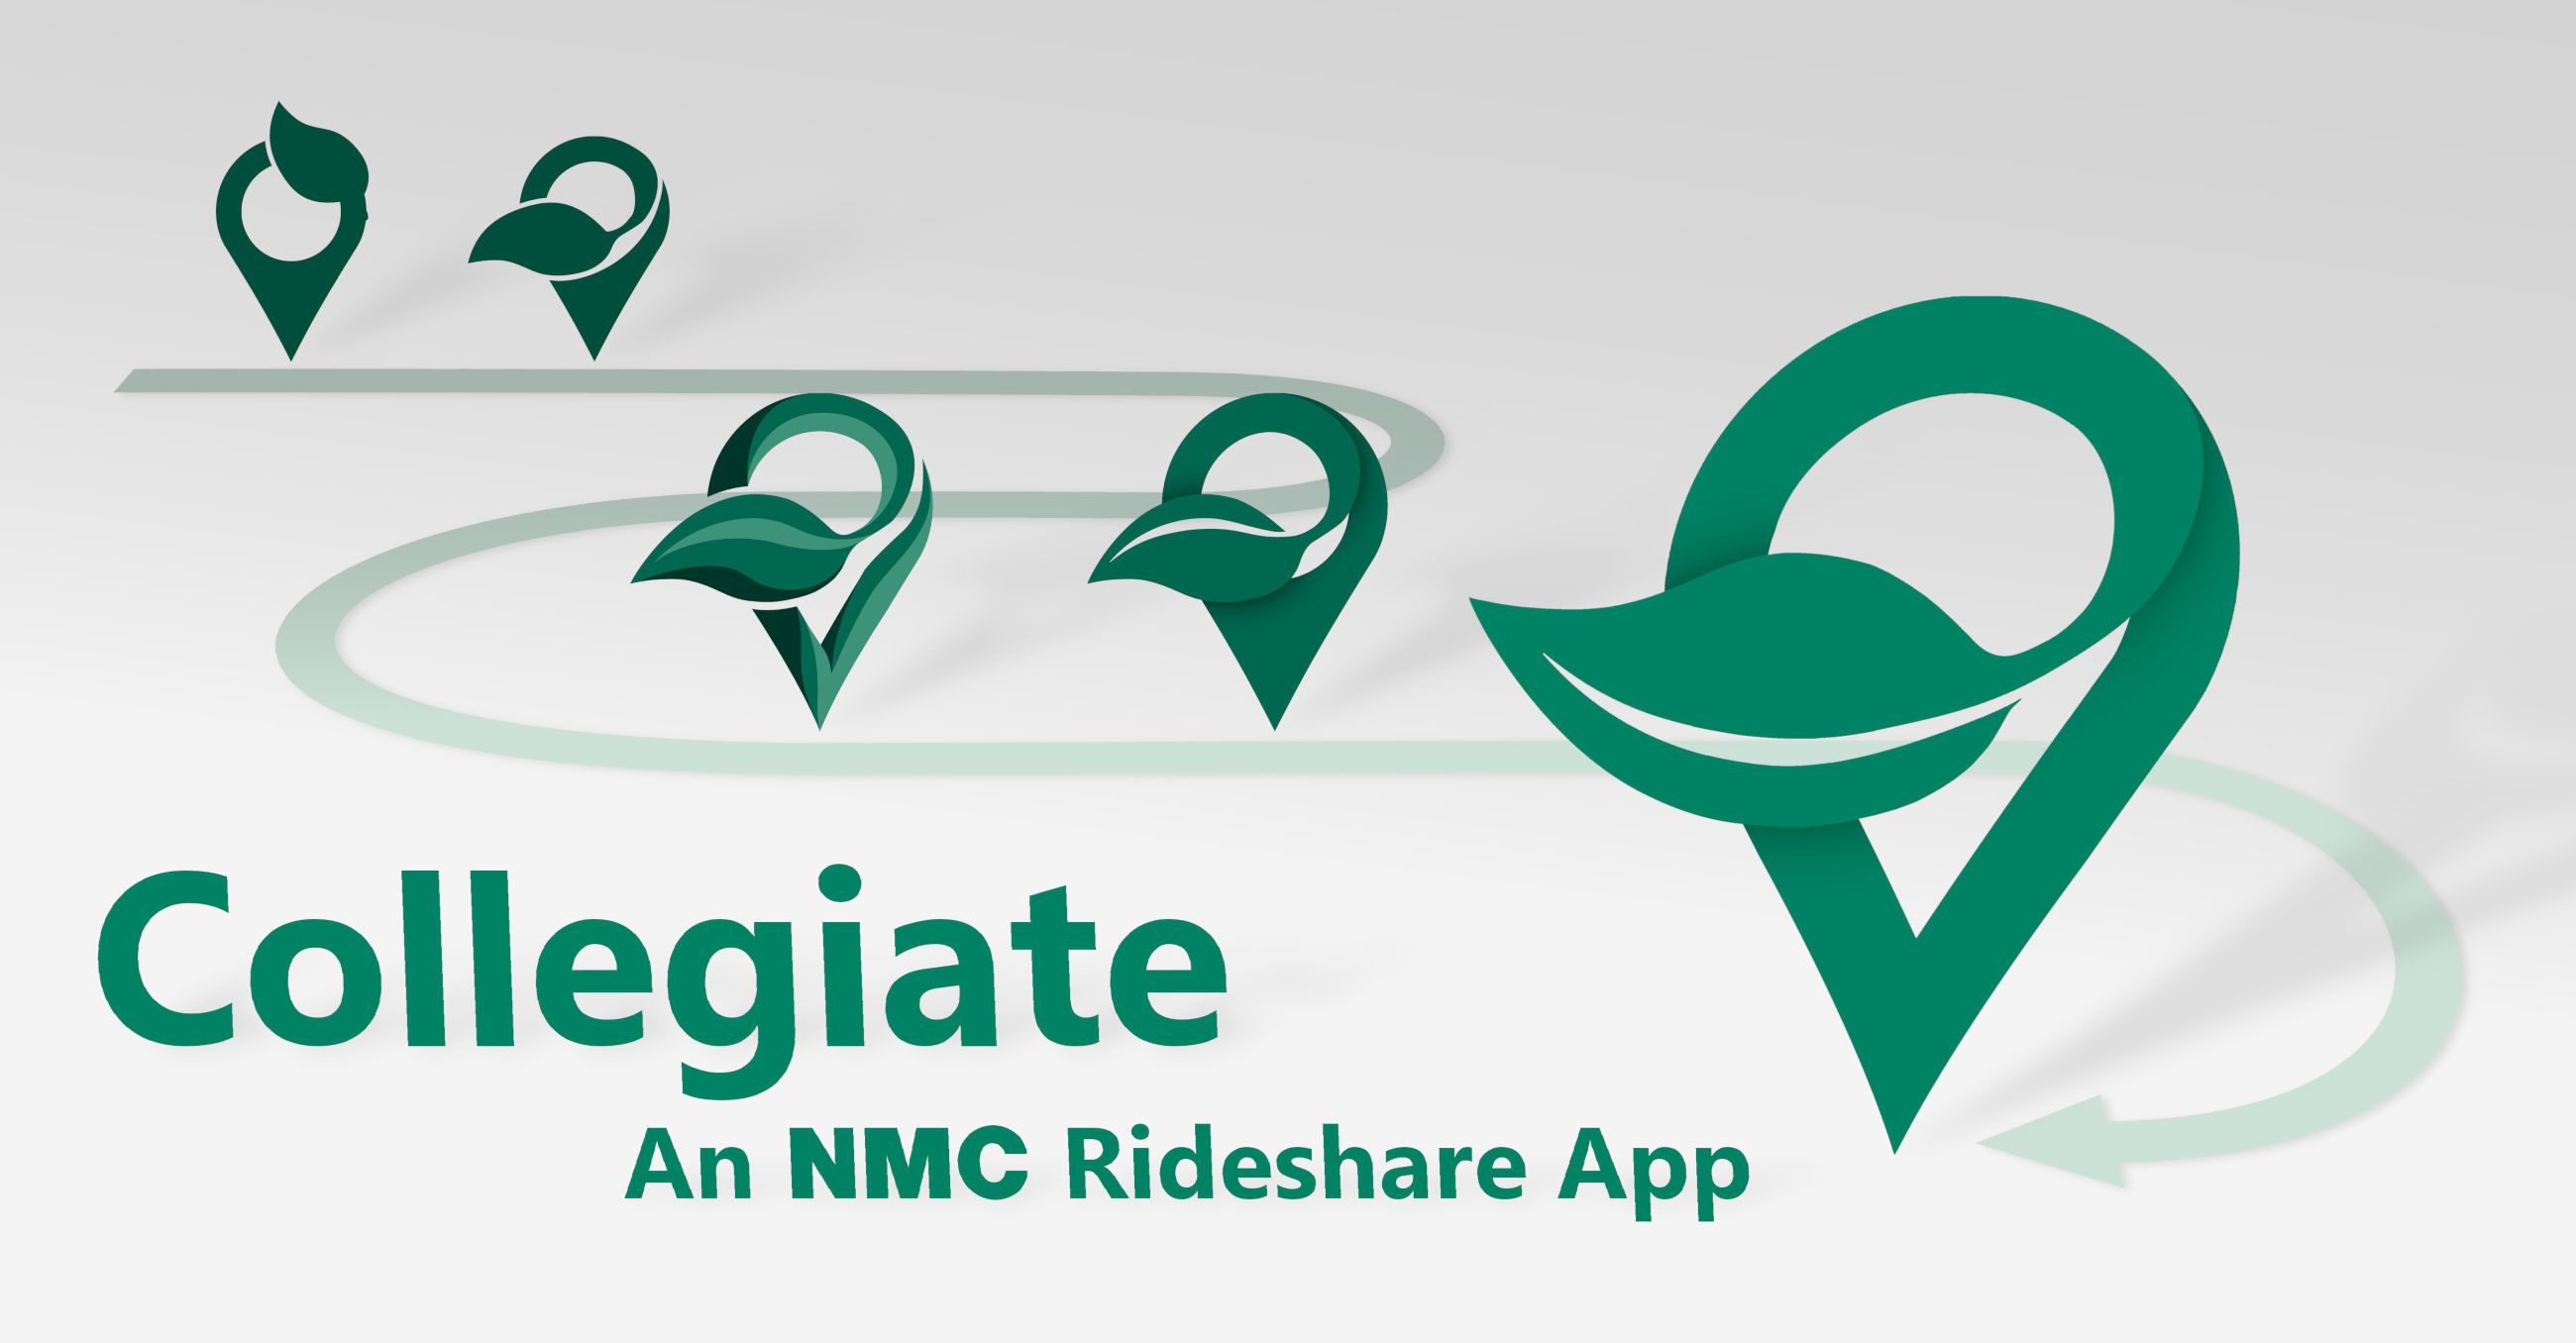 Depicts workflow for creation of a commissioned logo for the Northwestern Michigan College (NMC) rideshare app Collegiate.